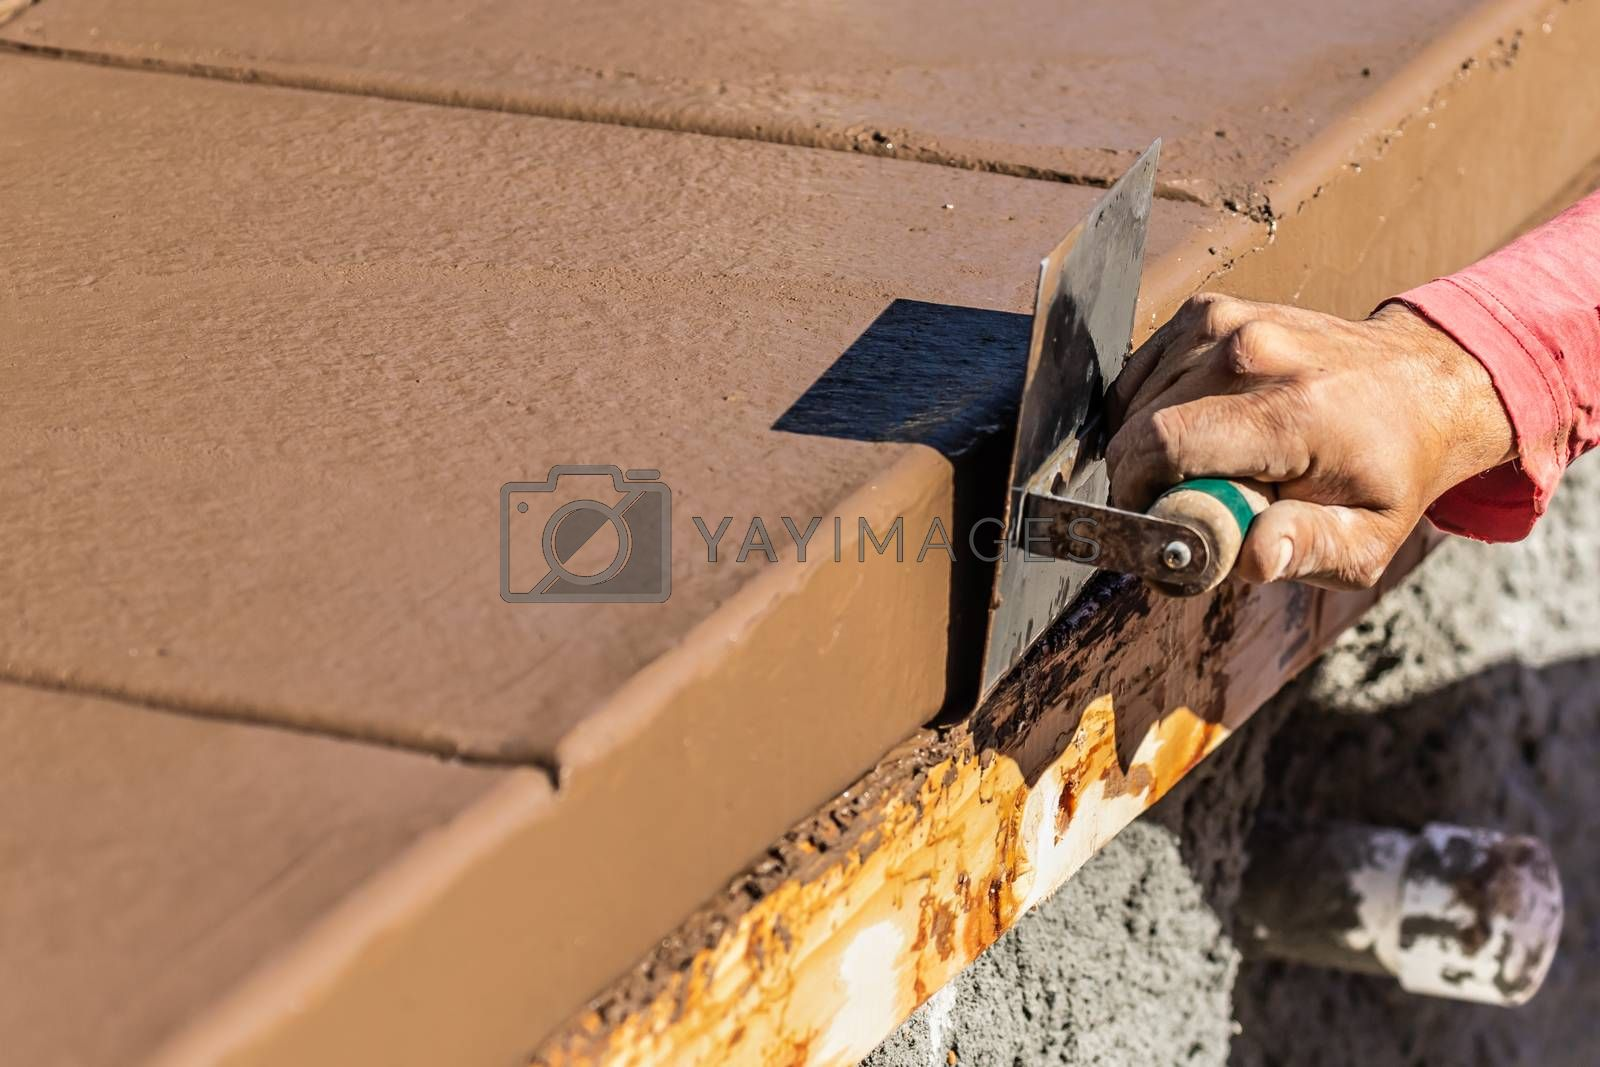 Construction Worker Using Stainless Steel Edger On Wet Cement Forming Coping Around New Pool.